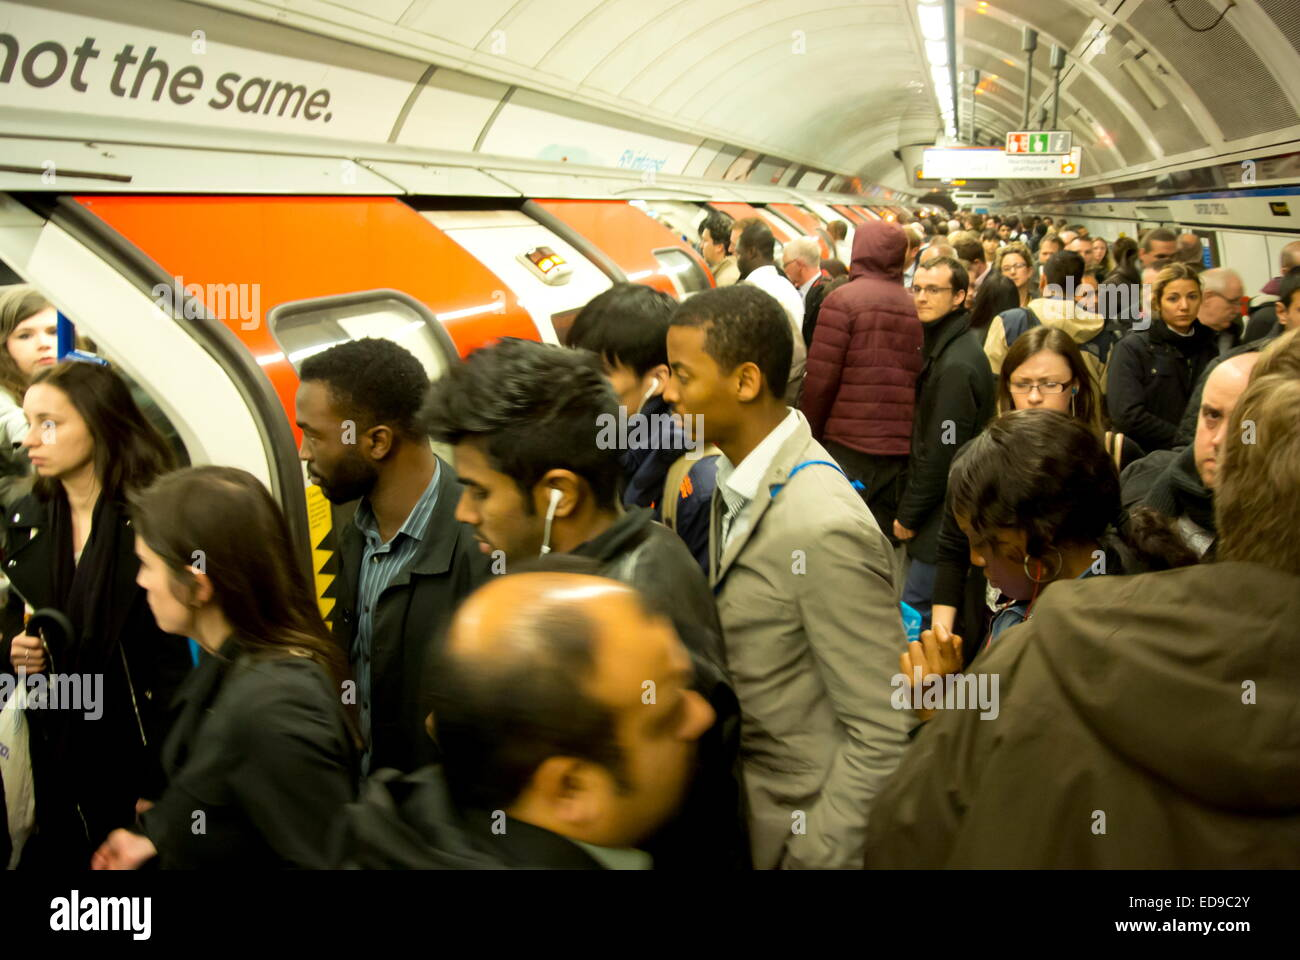 Crowds of commuters board a London Underground train at Oxford Circus station on the Victoria Line, London, UK - Stock Image